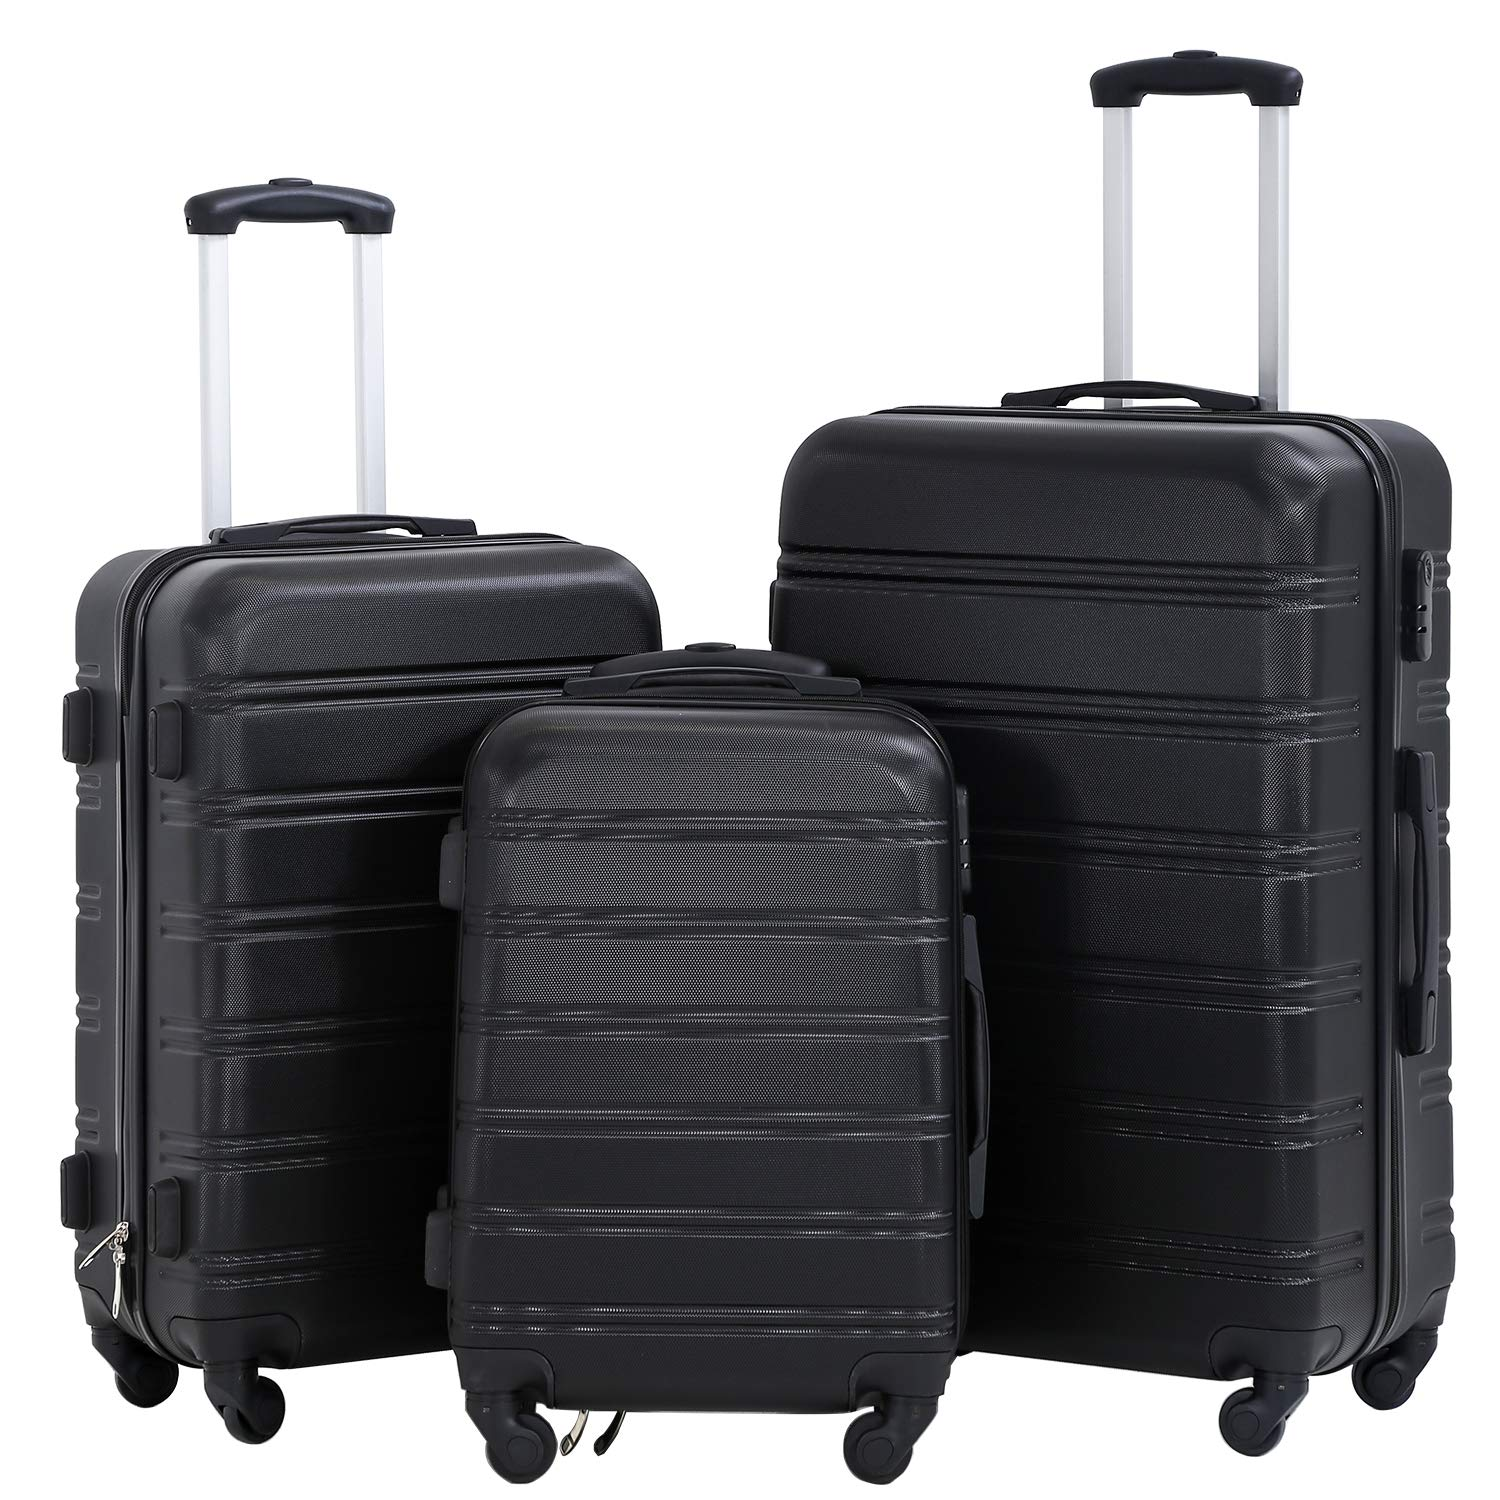 Hard shell Luggage Sets with Spinner Wheels 3 Piece Suitcase Luggage Set for women Lightweight with Durable ABS Hard shell Password Lock 20 24 28 inch Black